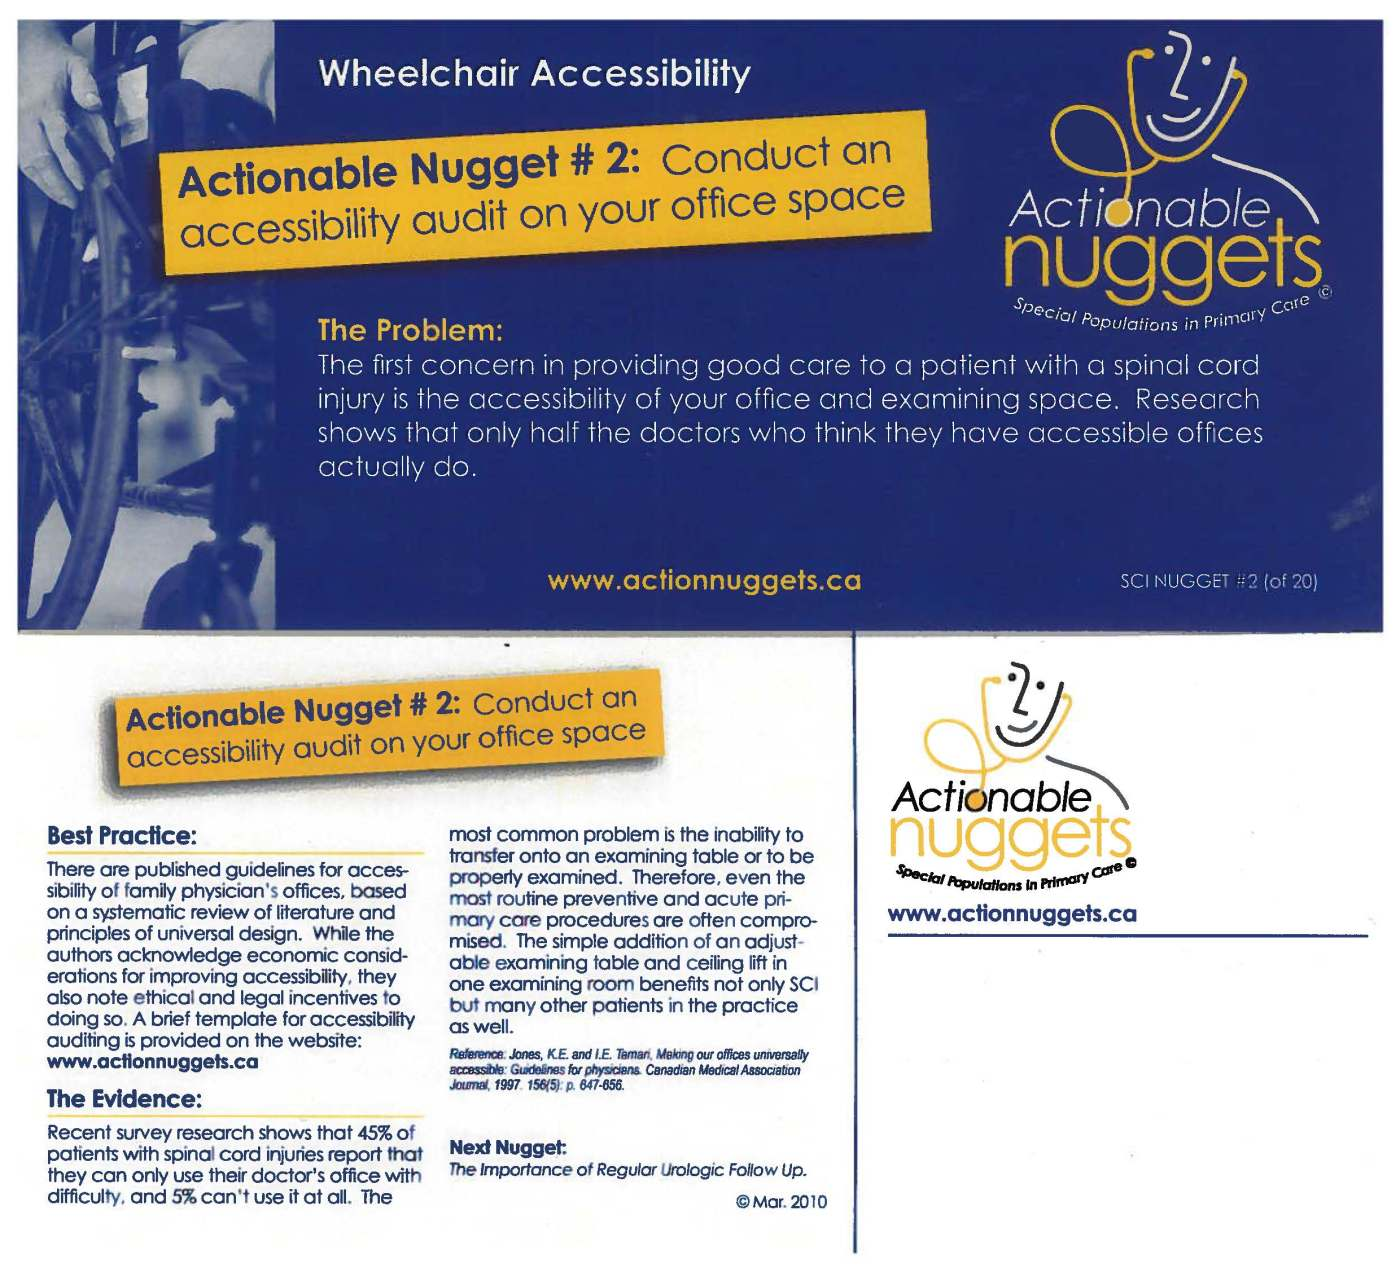 2. Wheelchair Accessibility – Actionable Nuggets